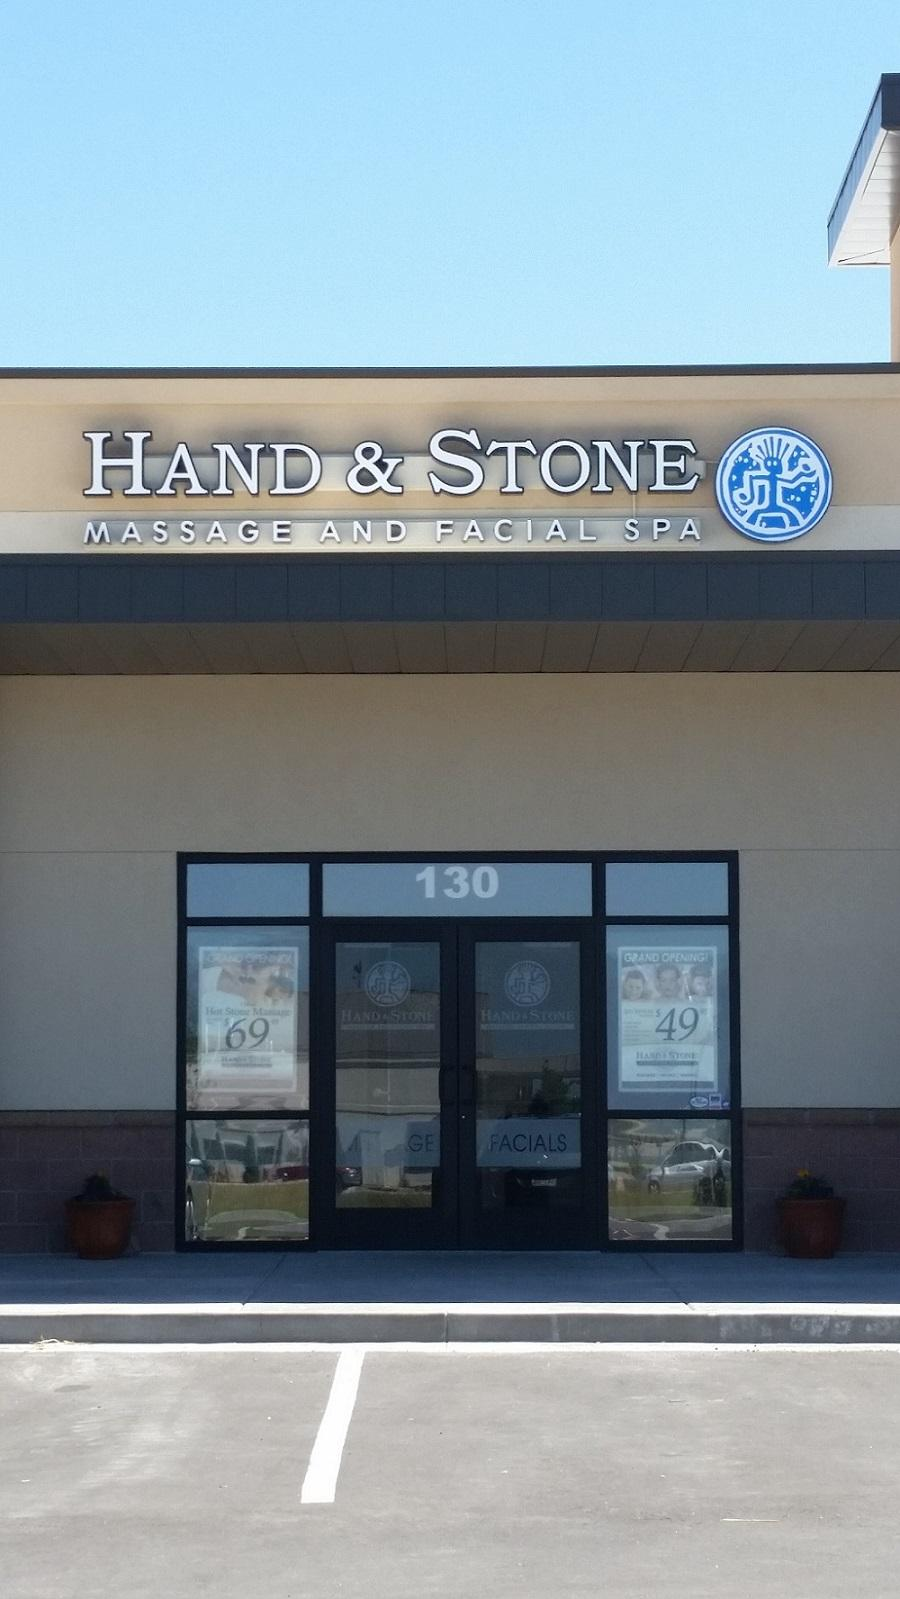 Hand & Stone Massage and Facial Spa is now open in Colorado Springs!